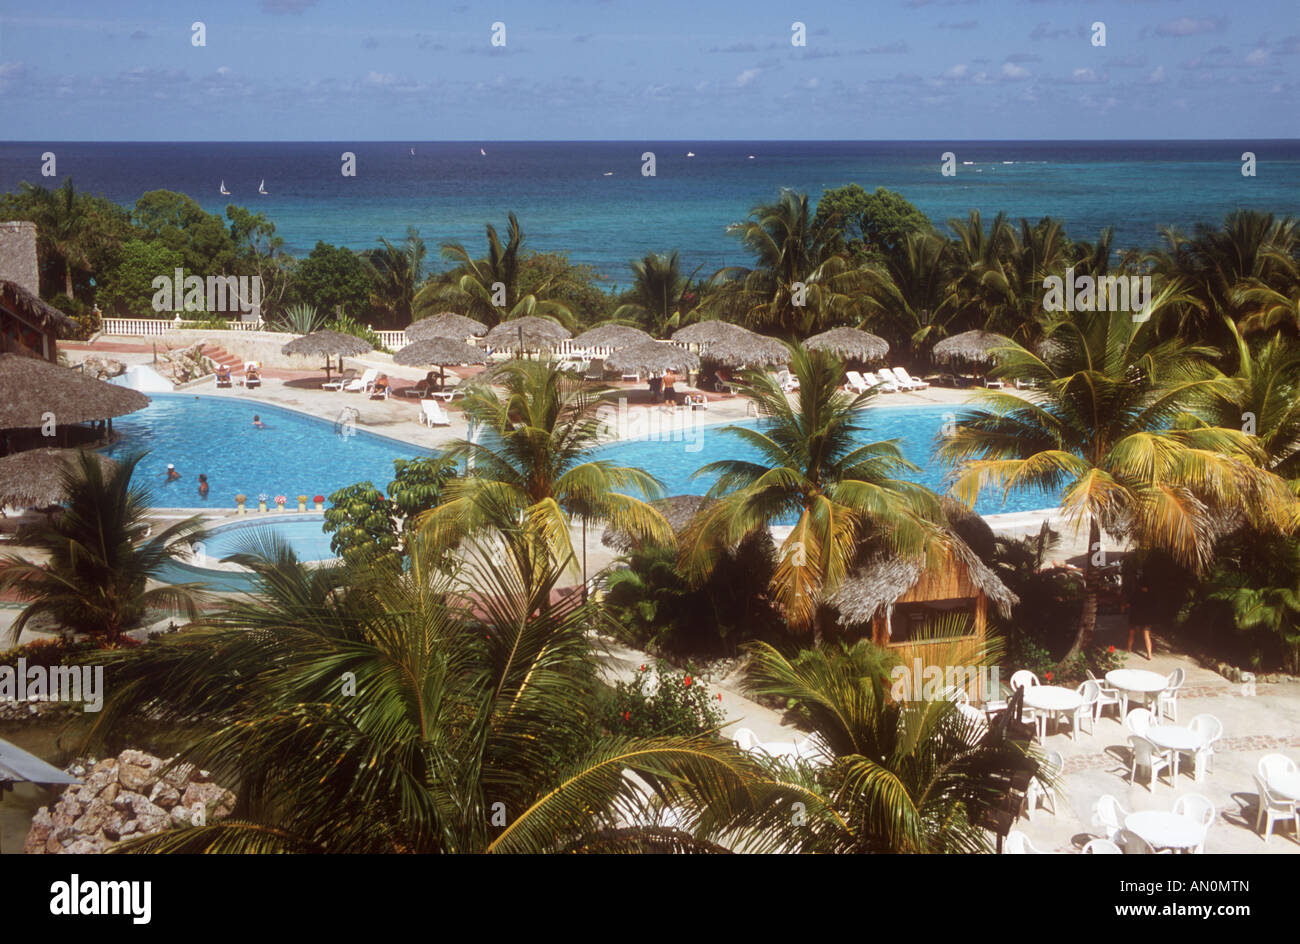 View From Balcony Of Luxury Beach Resort Near To Guardalavaca Cuba Showing The Pool Palm Trees And Sea In Distance